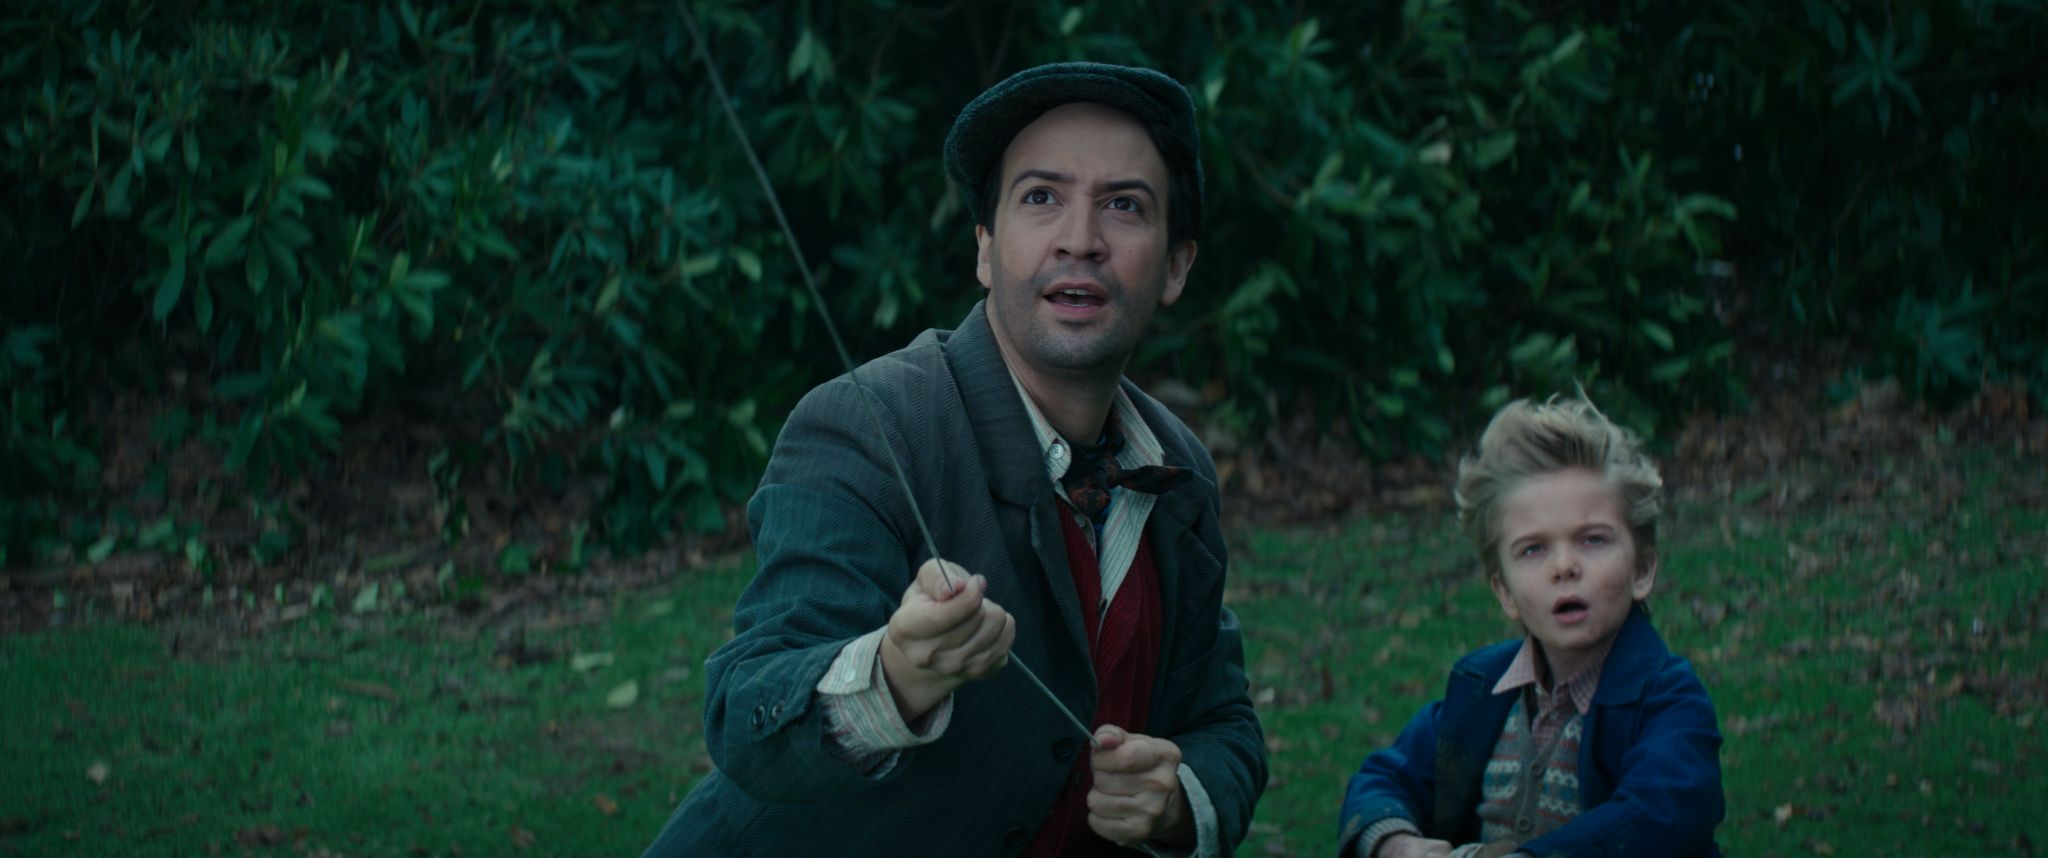 Mary Poppins Returns Lin Manuel Miranda On Why The Original Makes Him Cry Collider